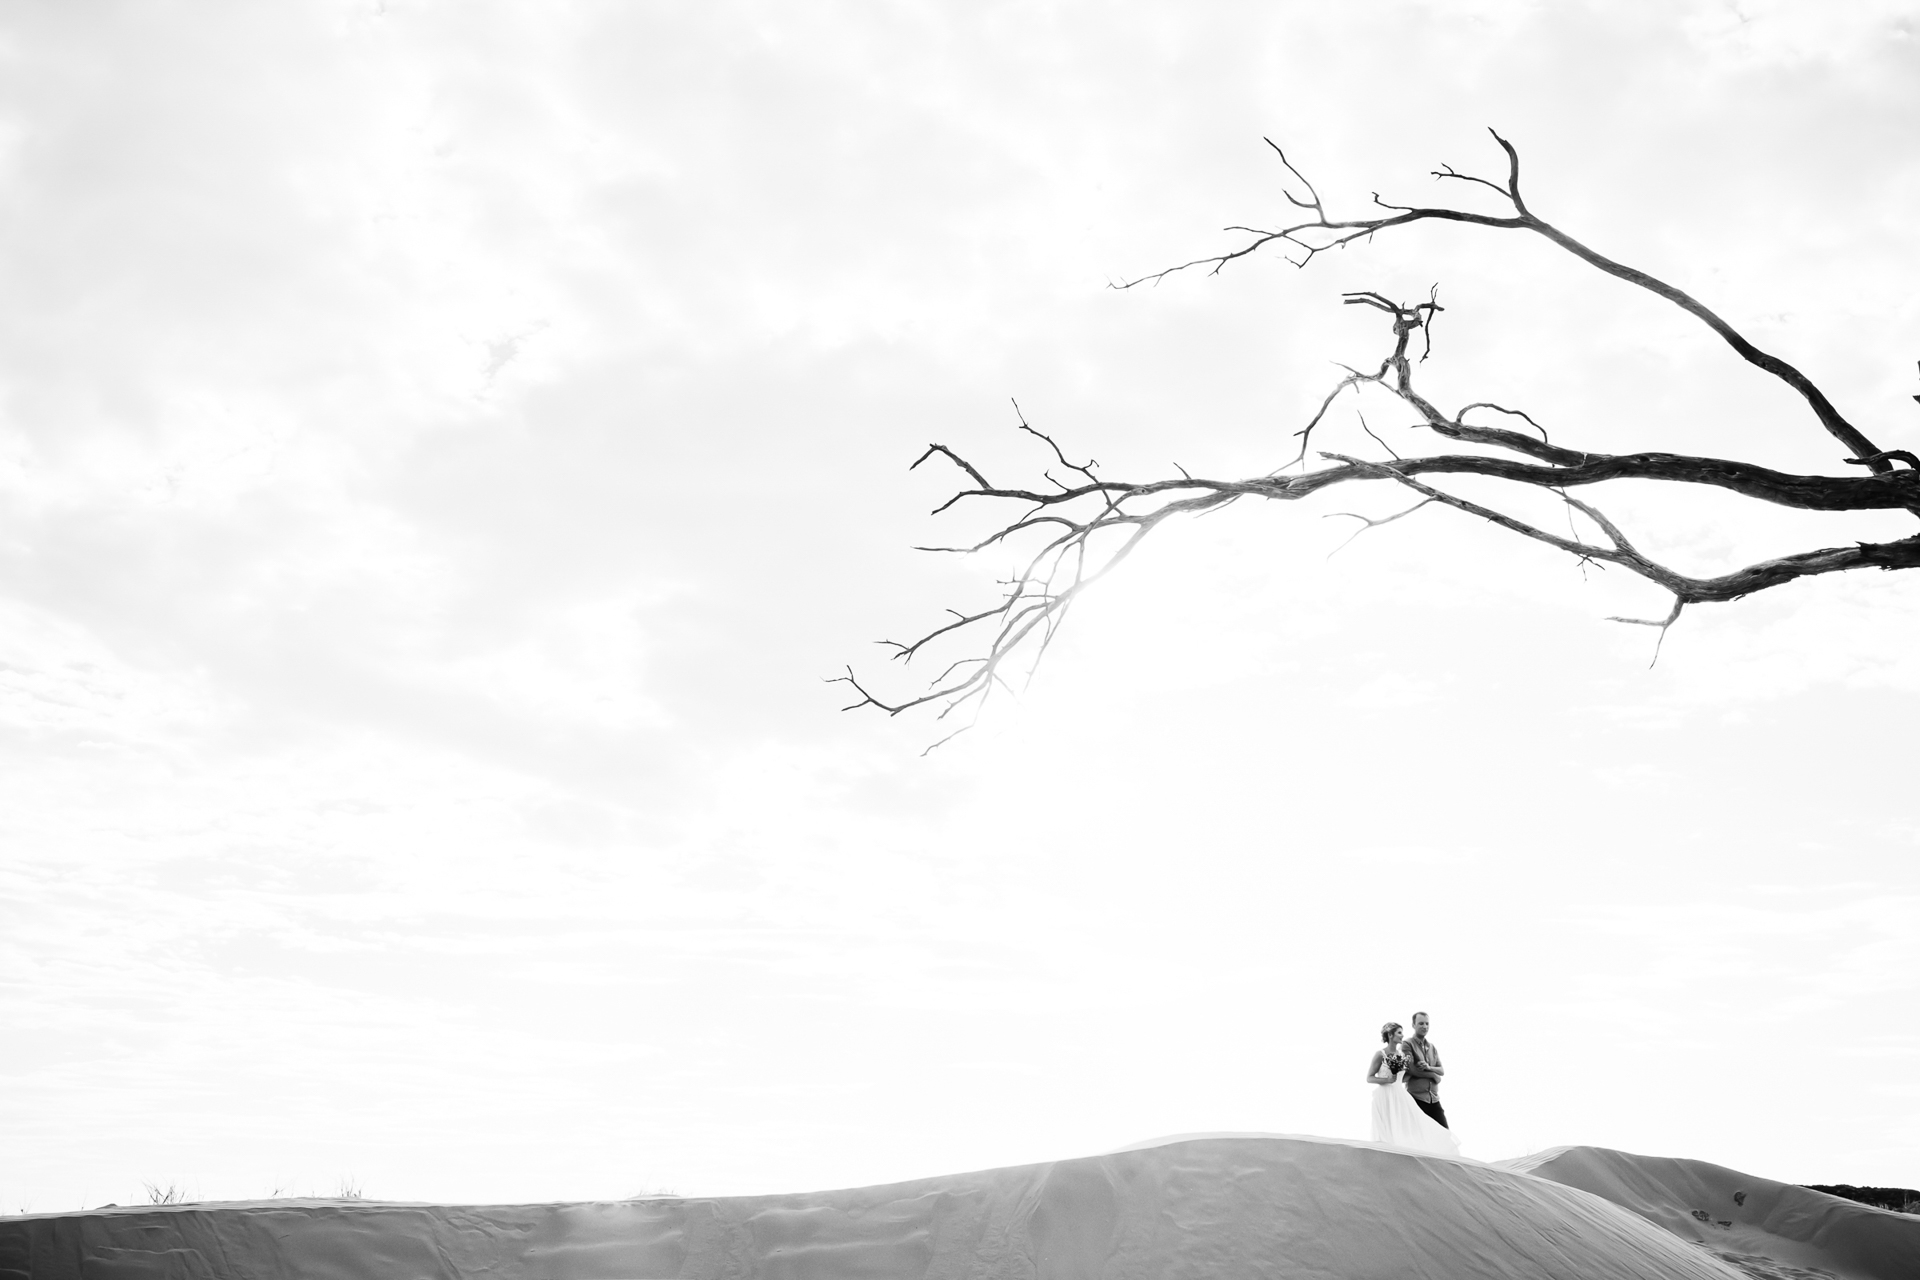 Namibia, Africa Outdoor Desert Wedding Image | The bride and her friend walk 'down the isle'